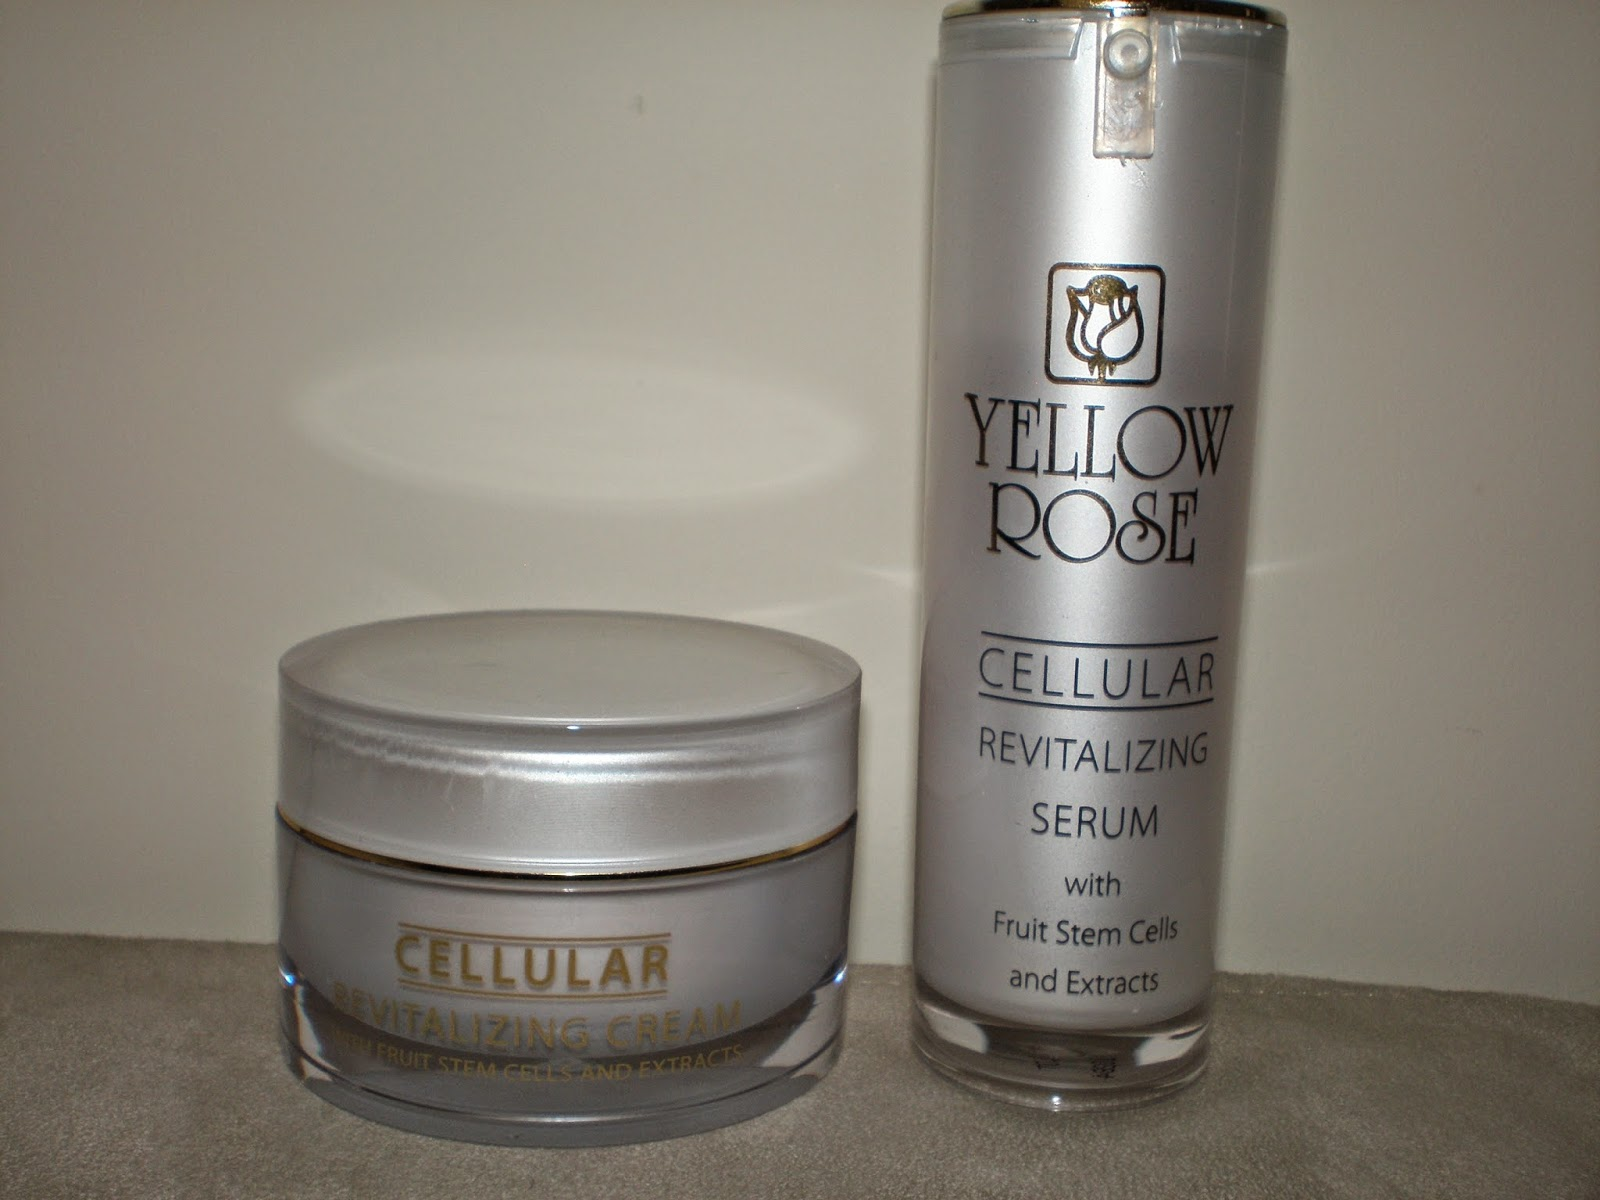 Yellow rose revitalizing cream and serum